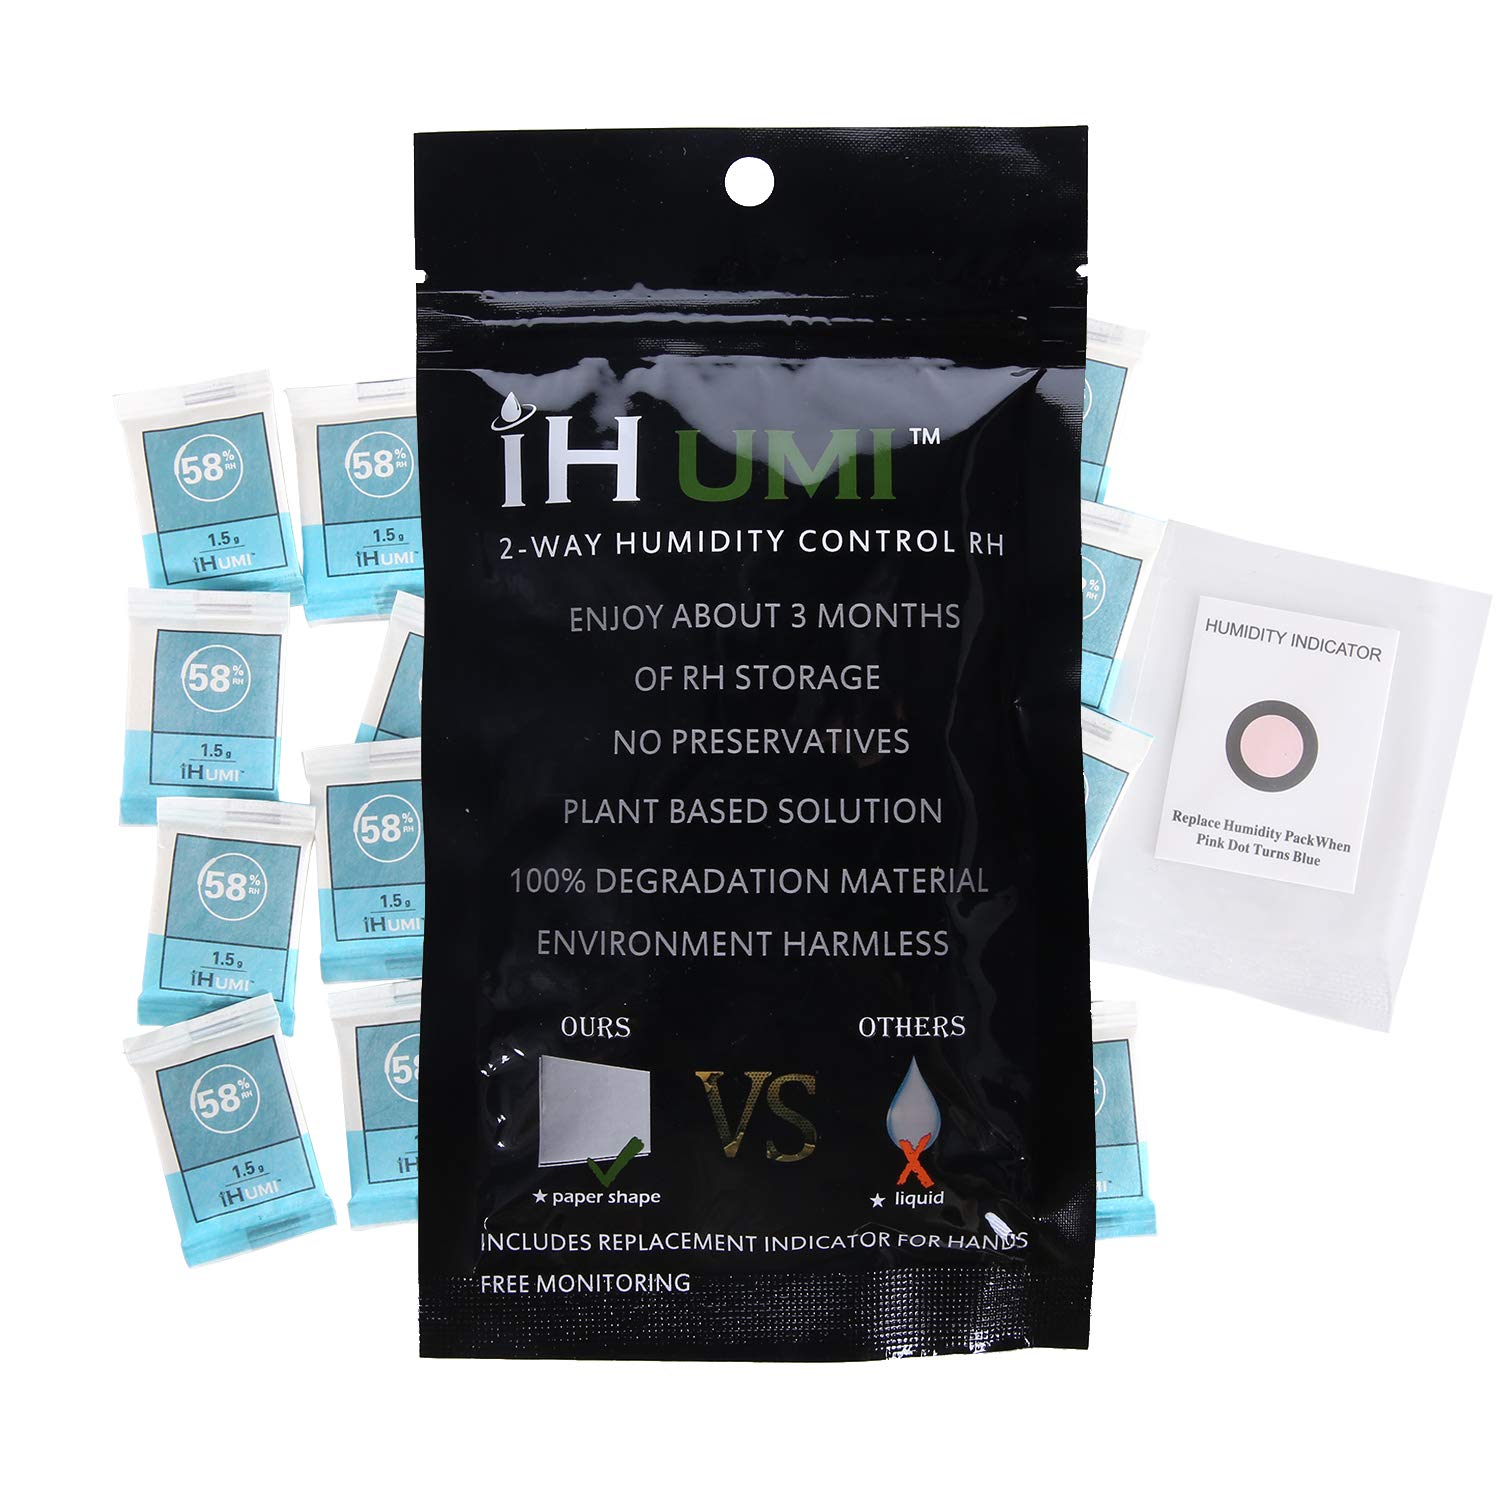 IHUMI Cigar Humidifier,58% RH Humidity Packs, 2-Way Humidity Control for Herb Flower Packs,Natural Plant Fiber and Polymer Materials Based,Bio-degradable and Leak Free,1.5 Gram,20 Pack